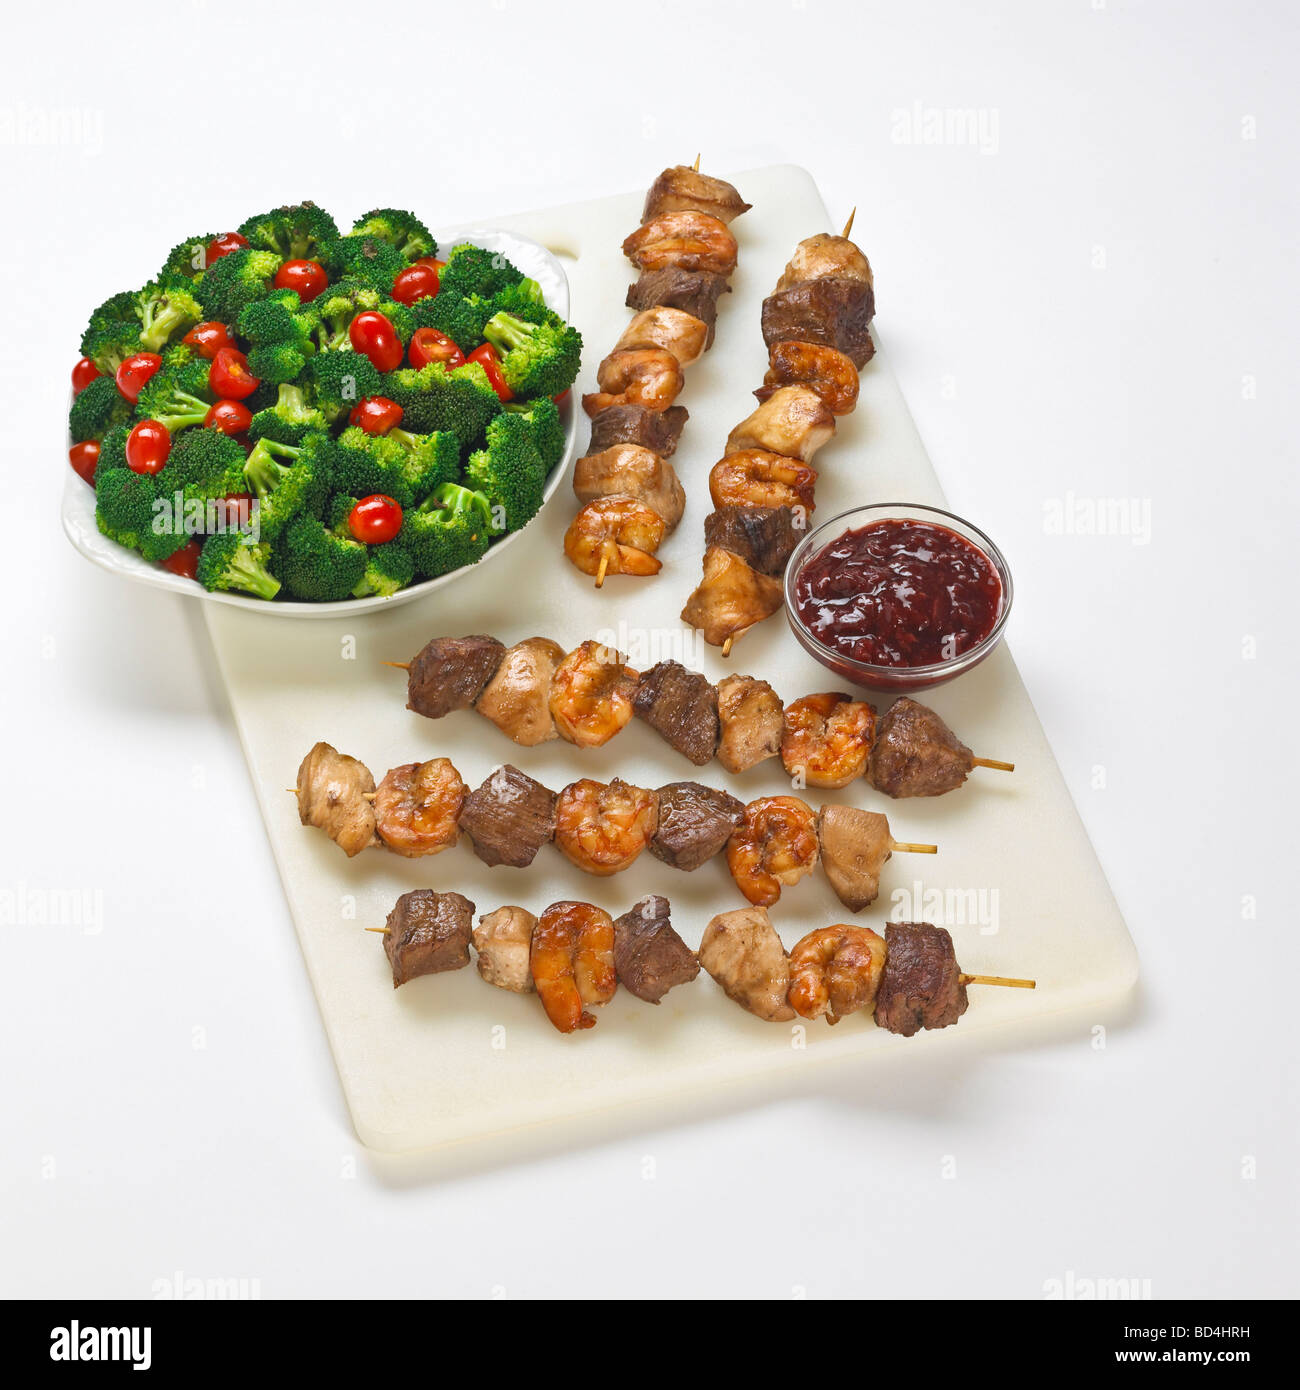 Country Kitchen Recipes Red And Green Vegetable Medley Mixed Grille With Cherry Sauce